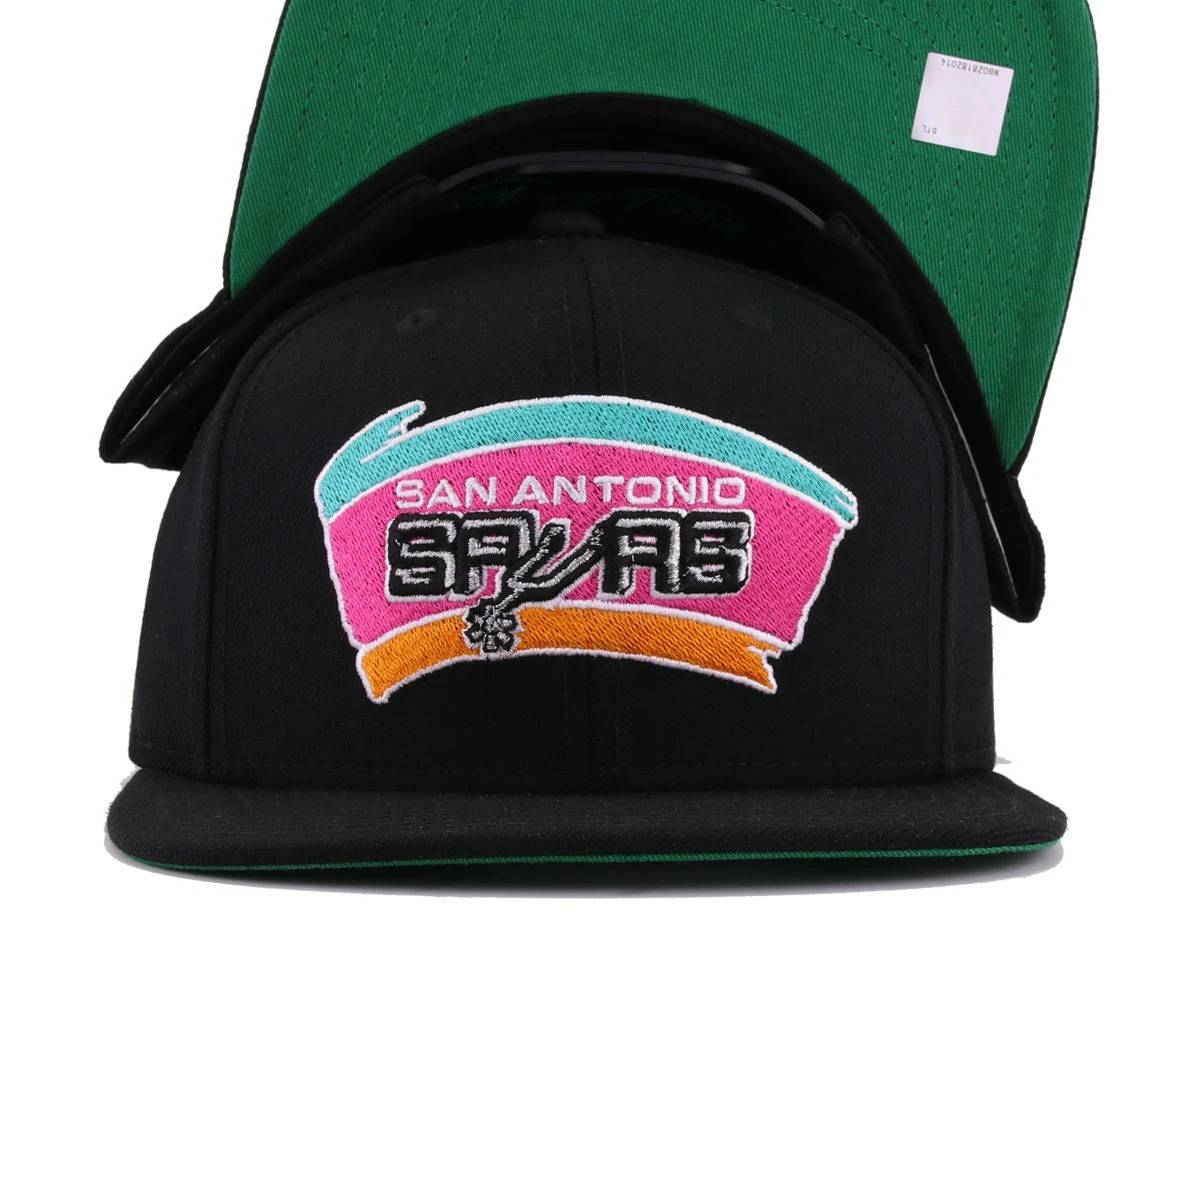 b878db9c7c7 San Antonio Spurs Black Hardwood Classic Mitchell and Ness Snapback